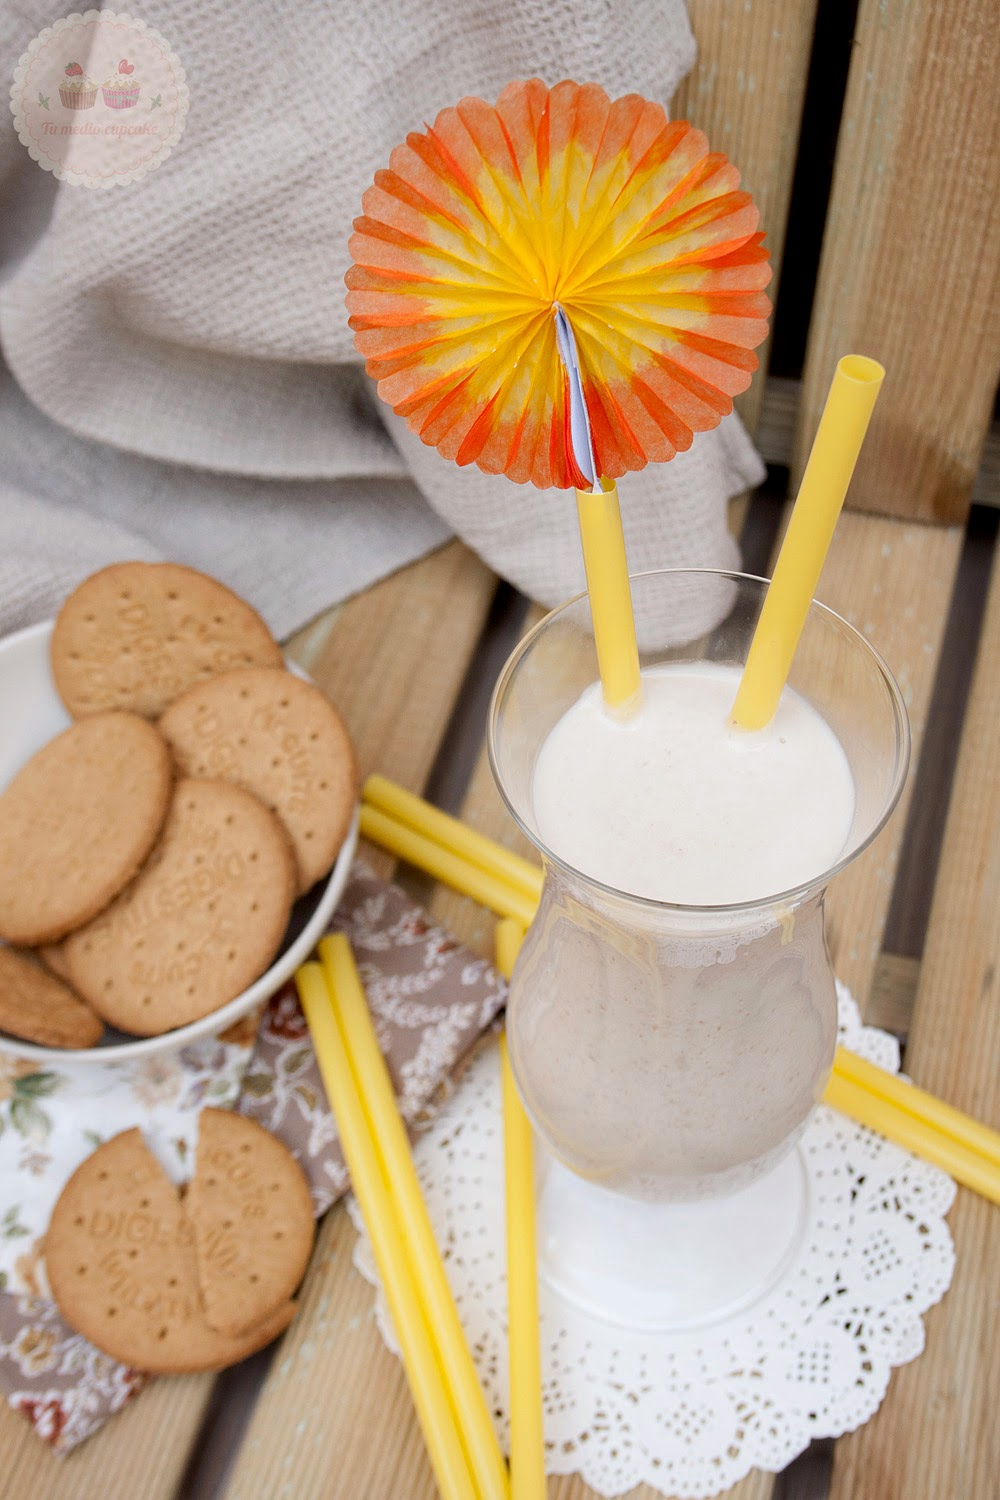 smoothie-de-naranja-y-galletas